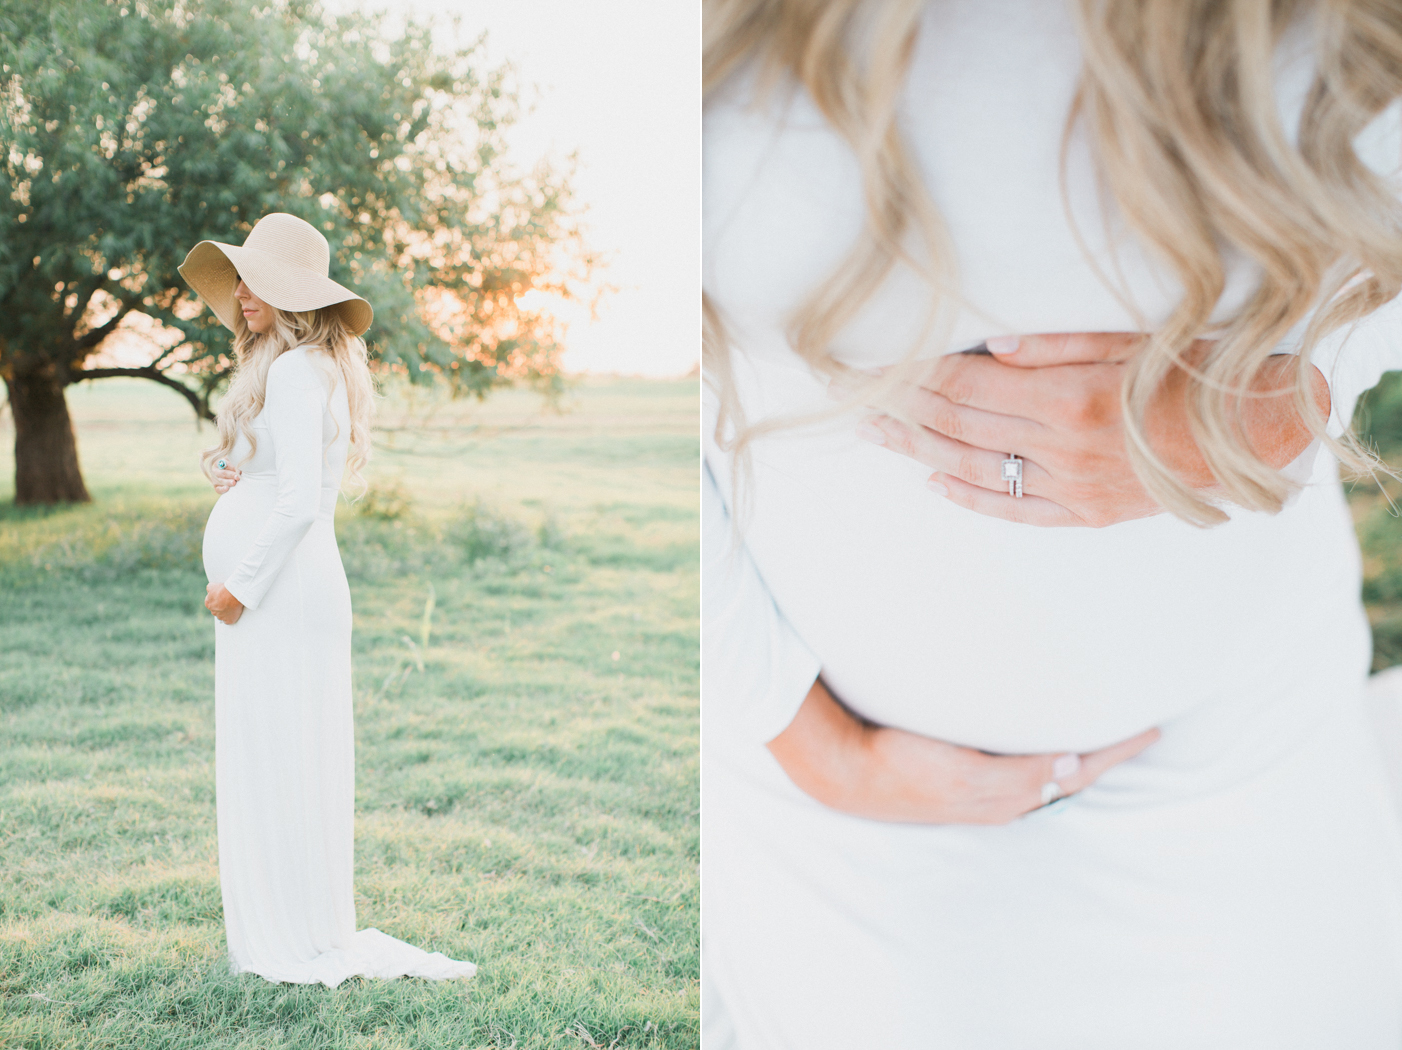 Rachel White Maternity Session-4 side by side.jpg